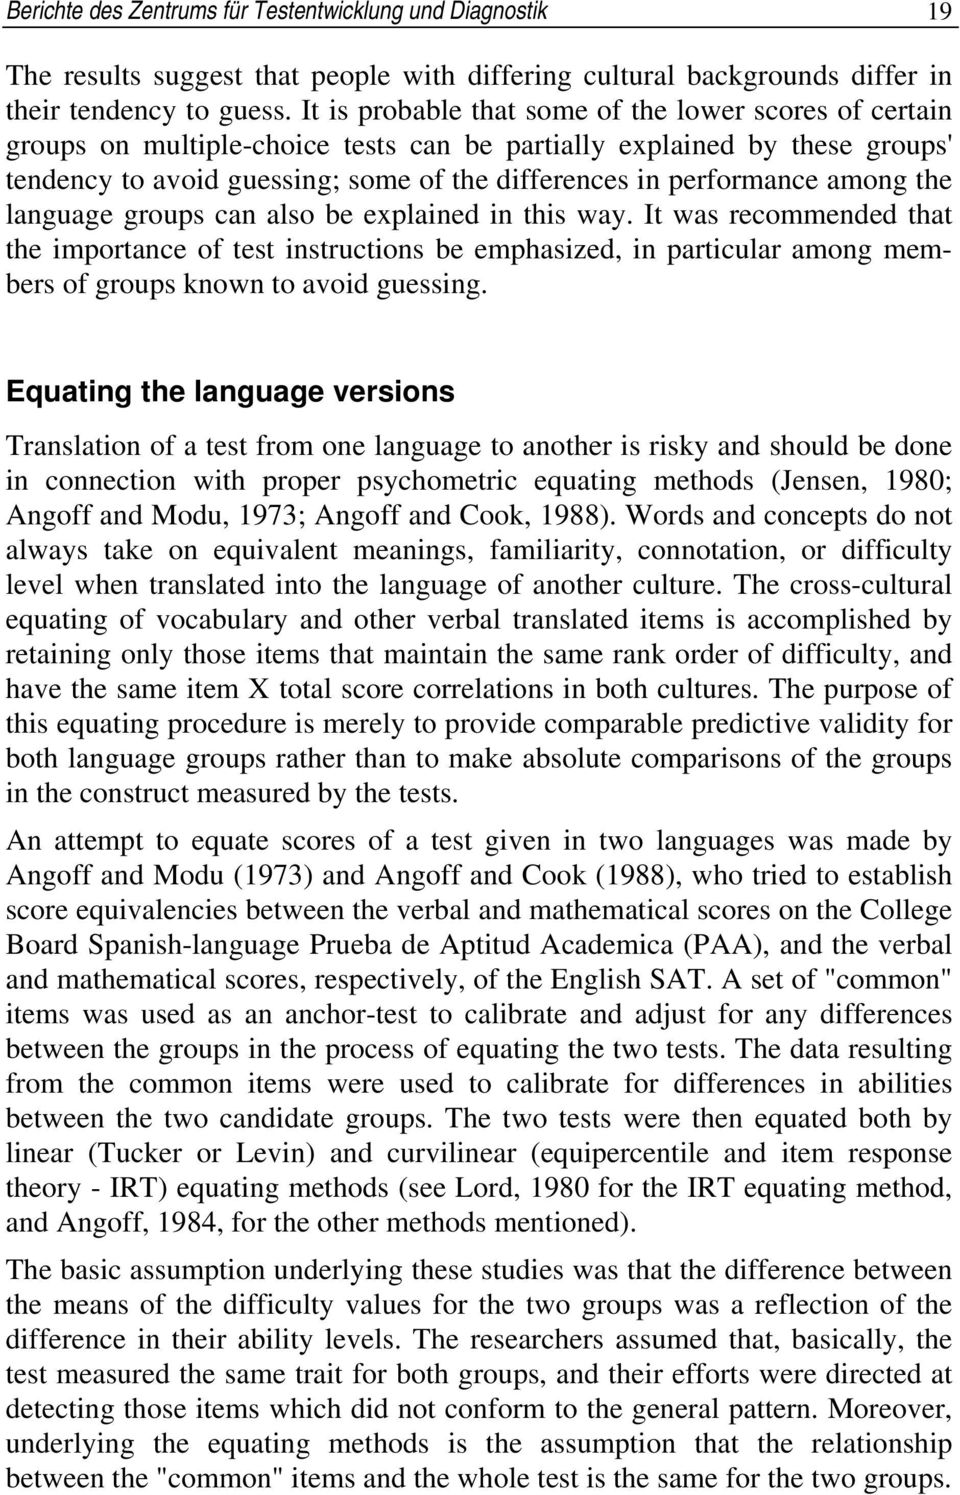 among the language groups can also be explained in this way. It was recommended that the importance of test instructions be emphasized, in particular among members of groups known to avoid guessing.